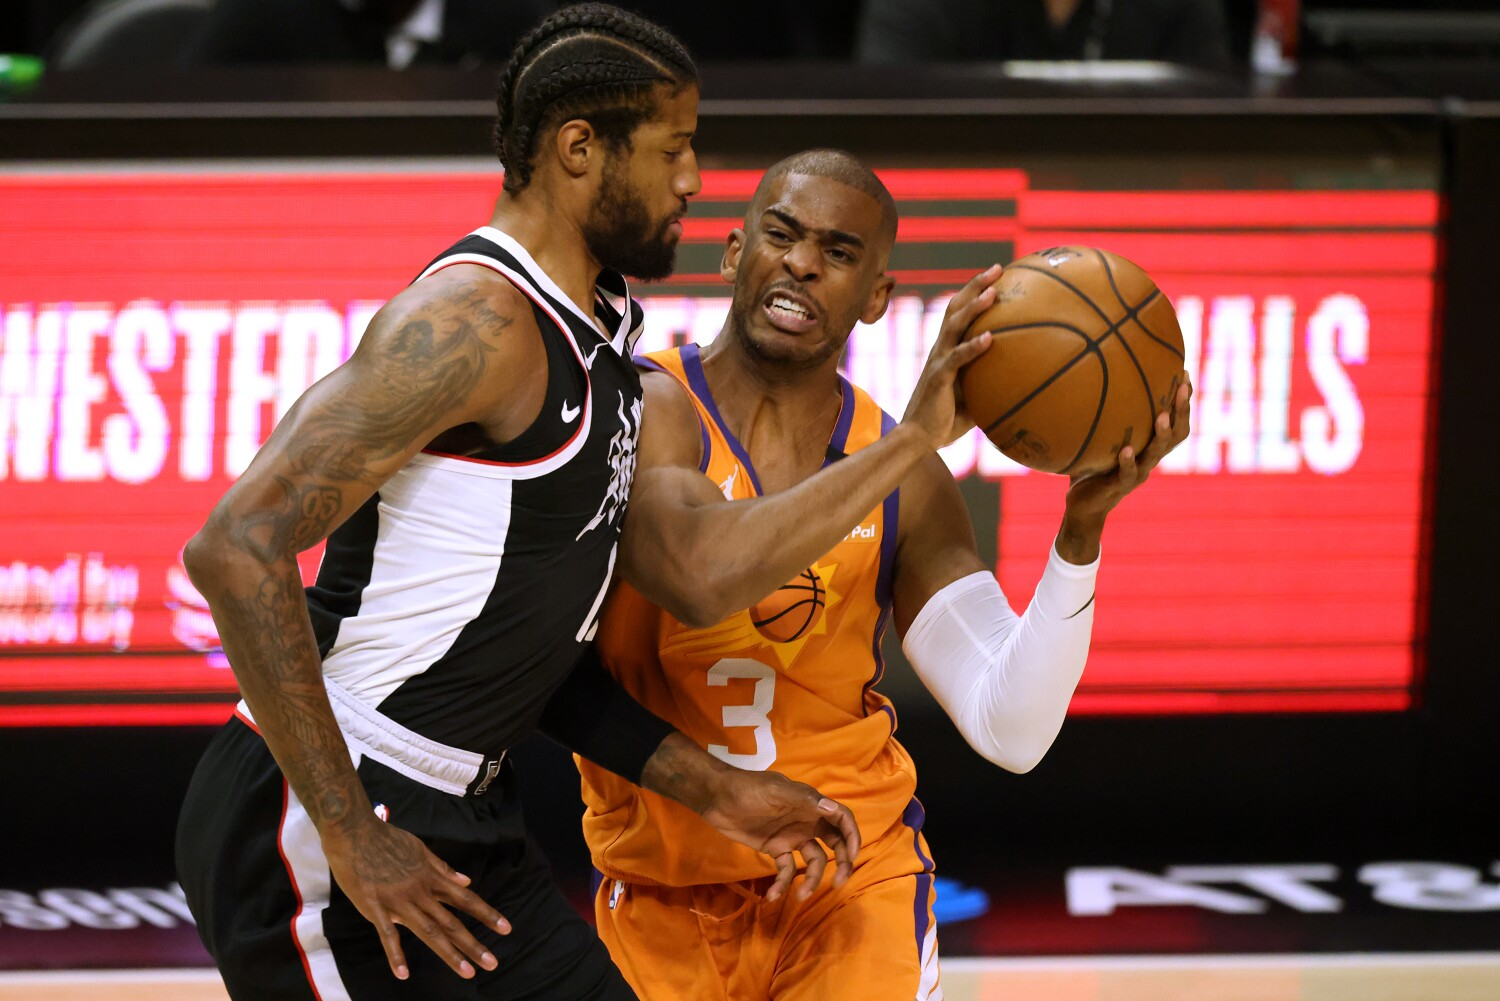 Chris Paul can't change the past, but present might be in his hands